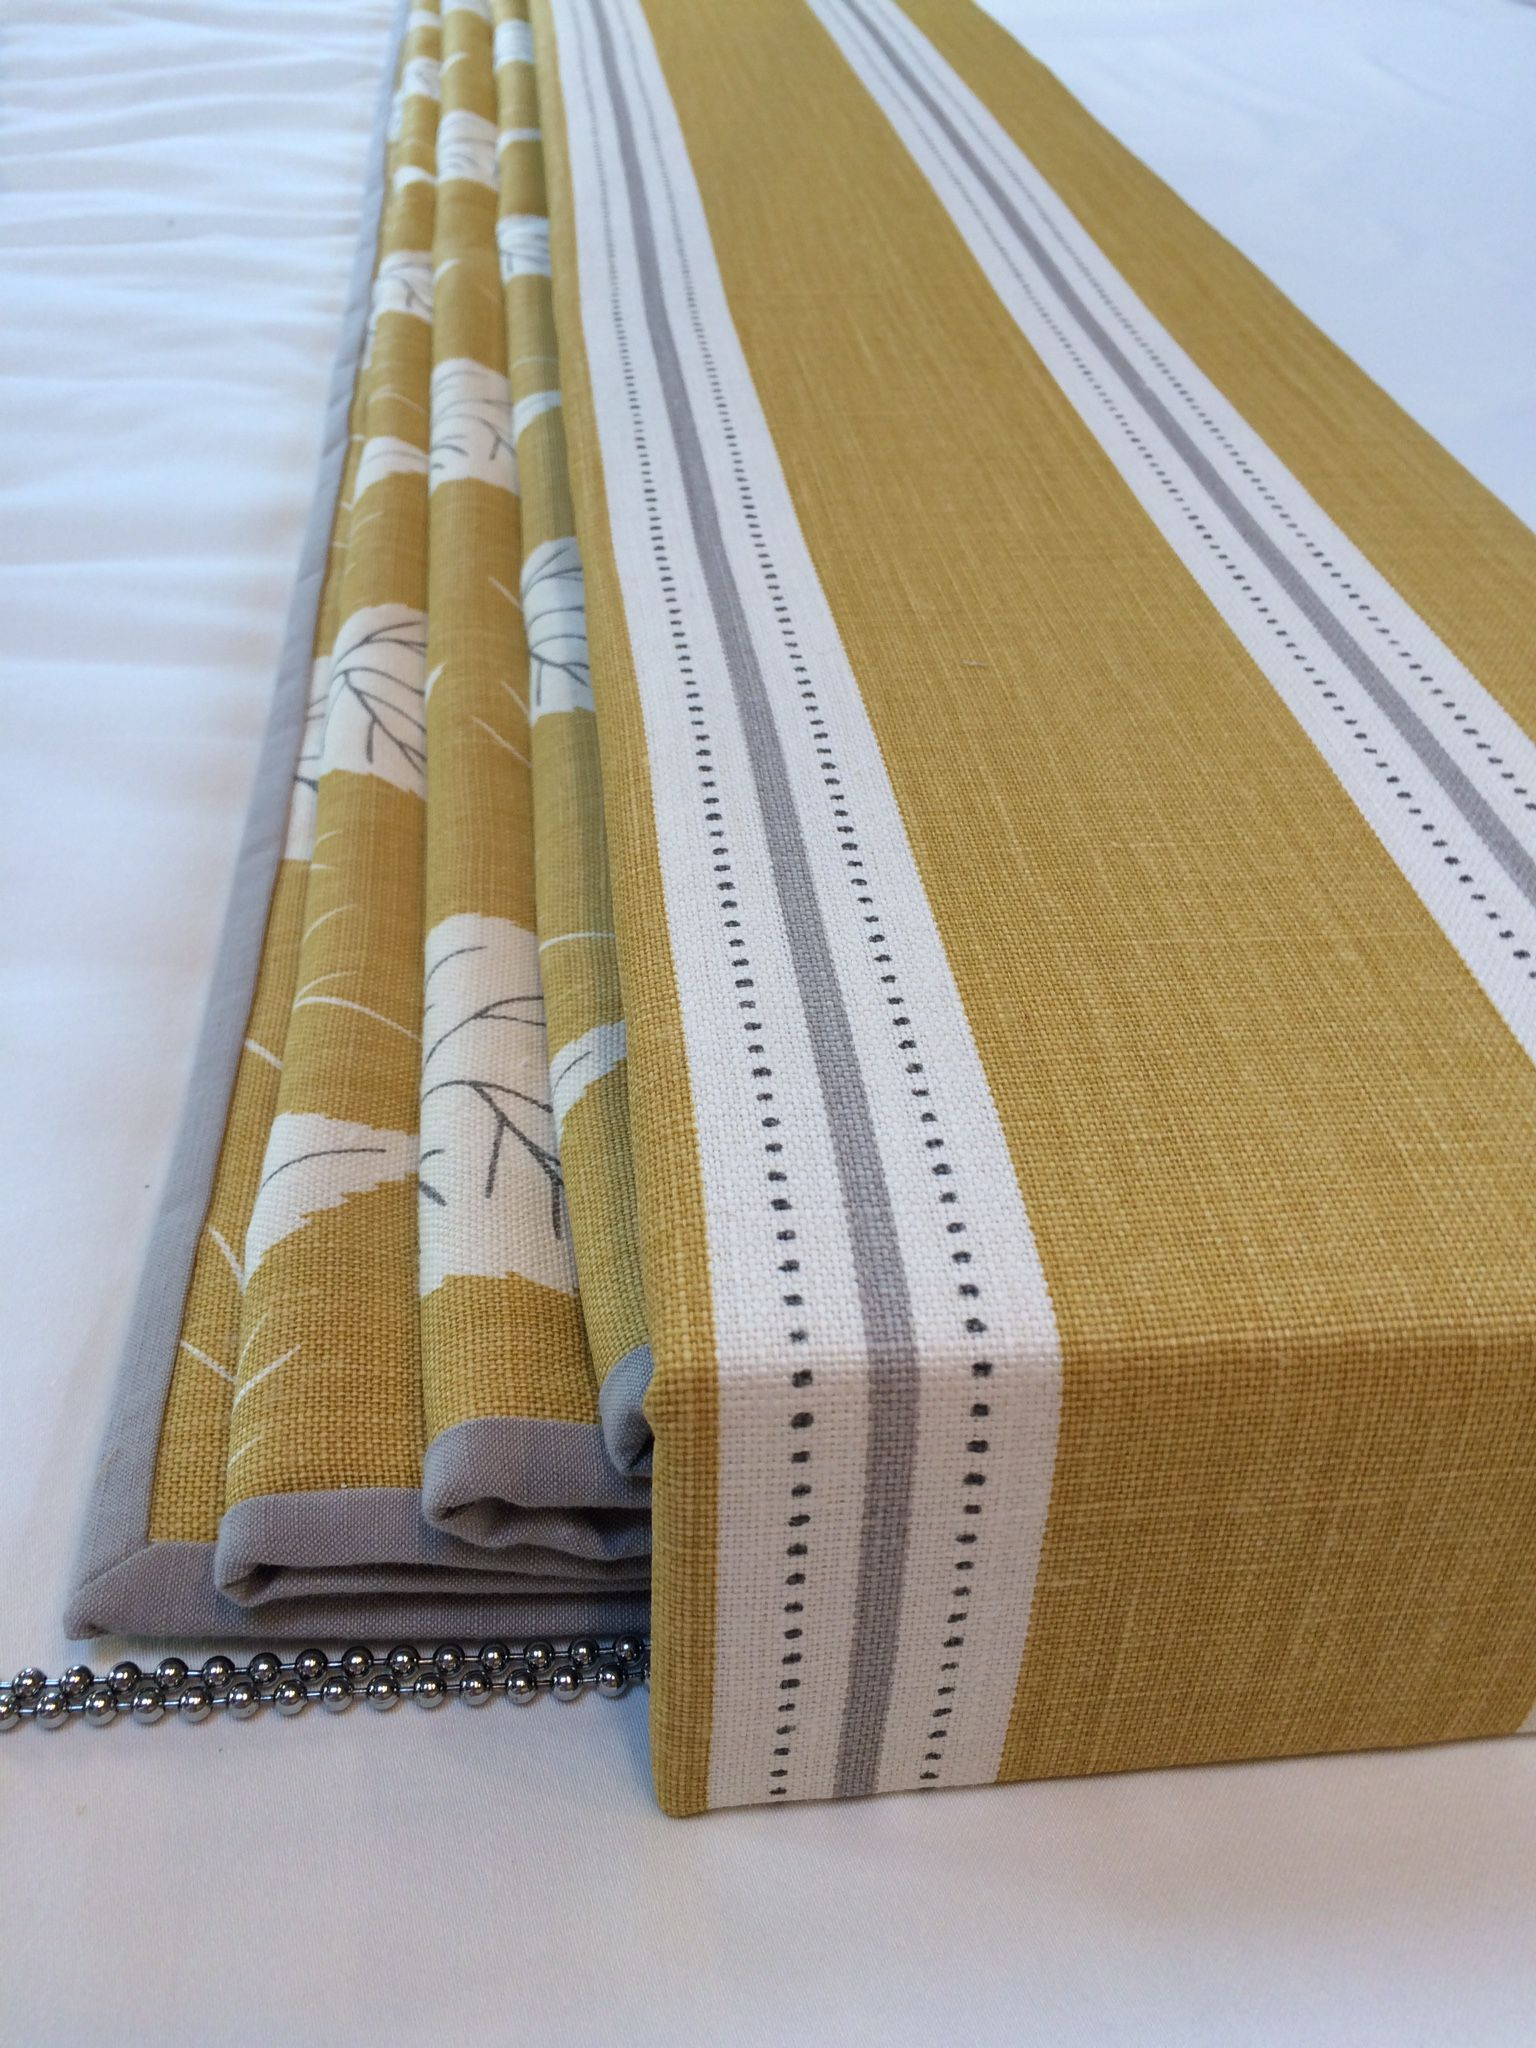 Contrast Bordered Roman Blind Given That Added Interest